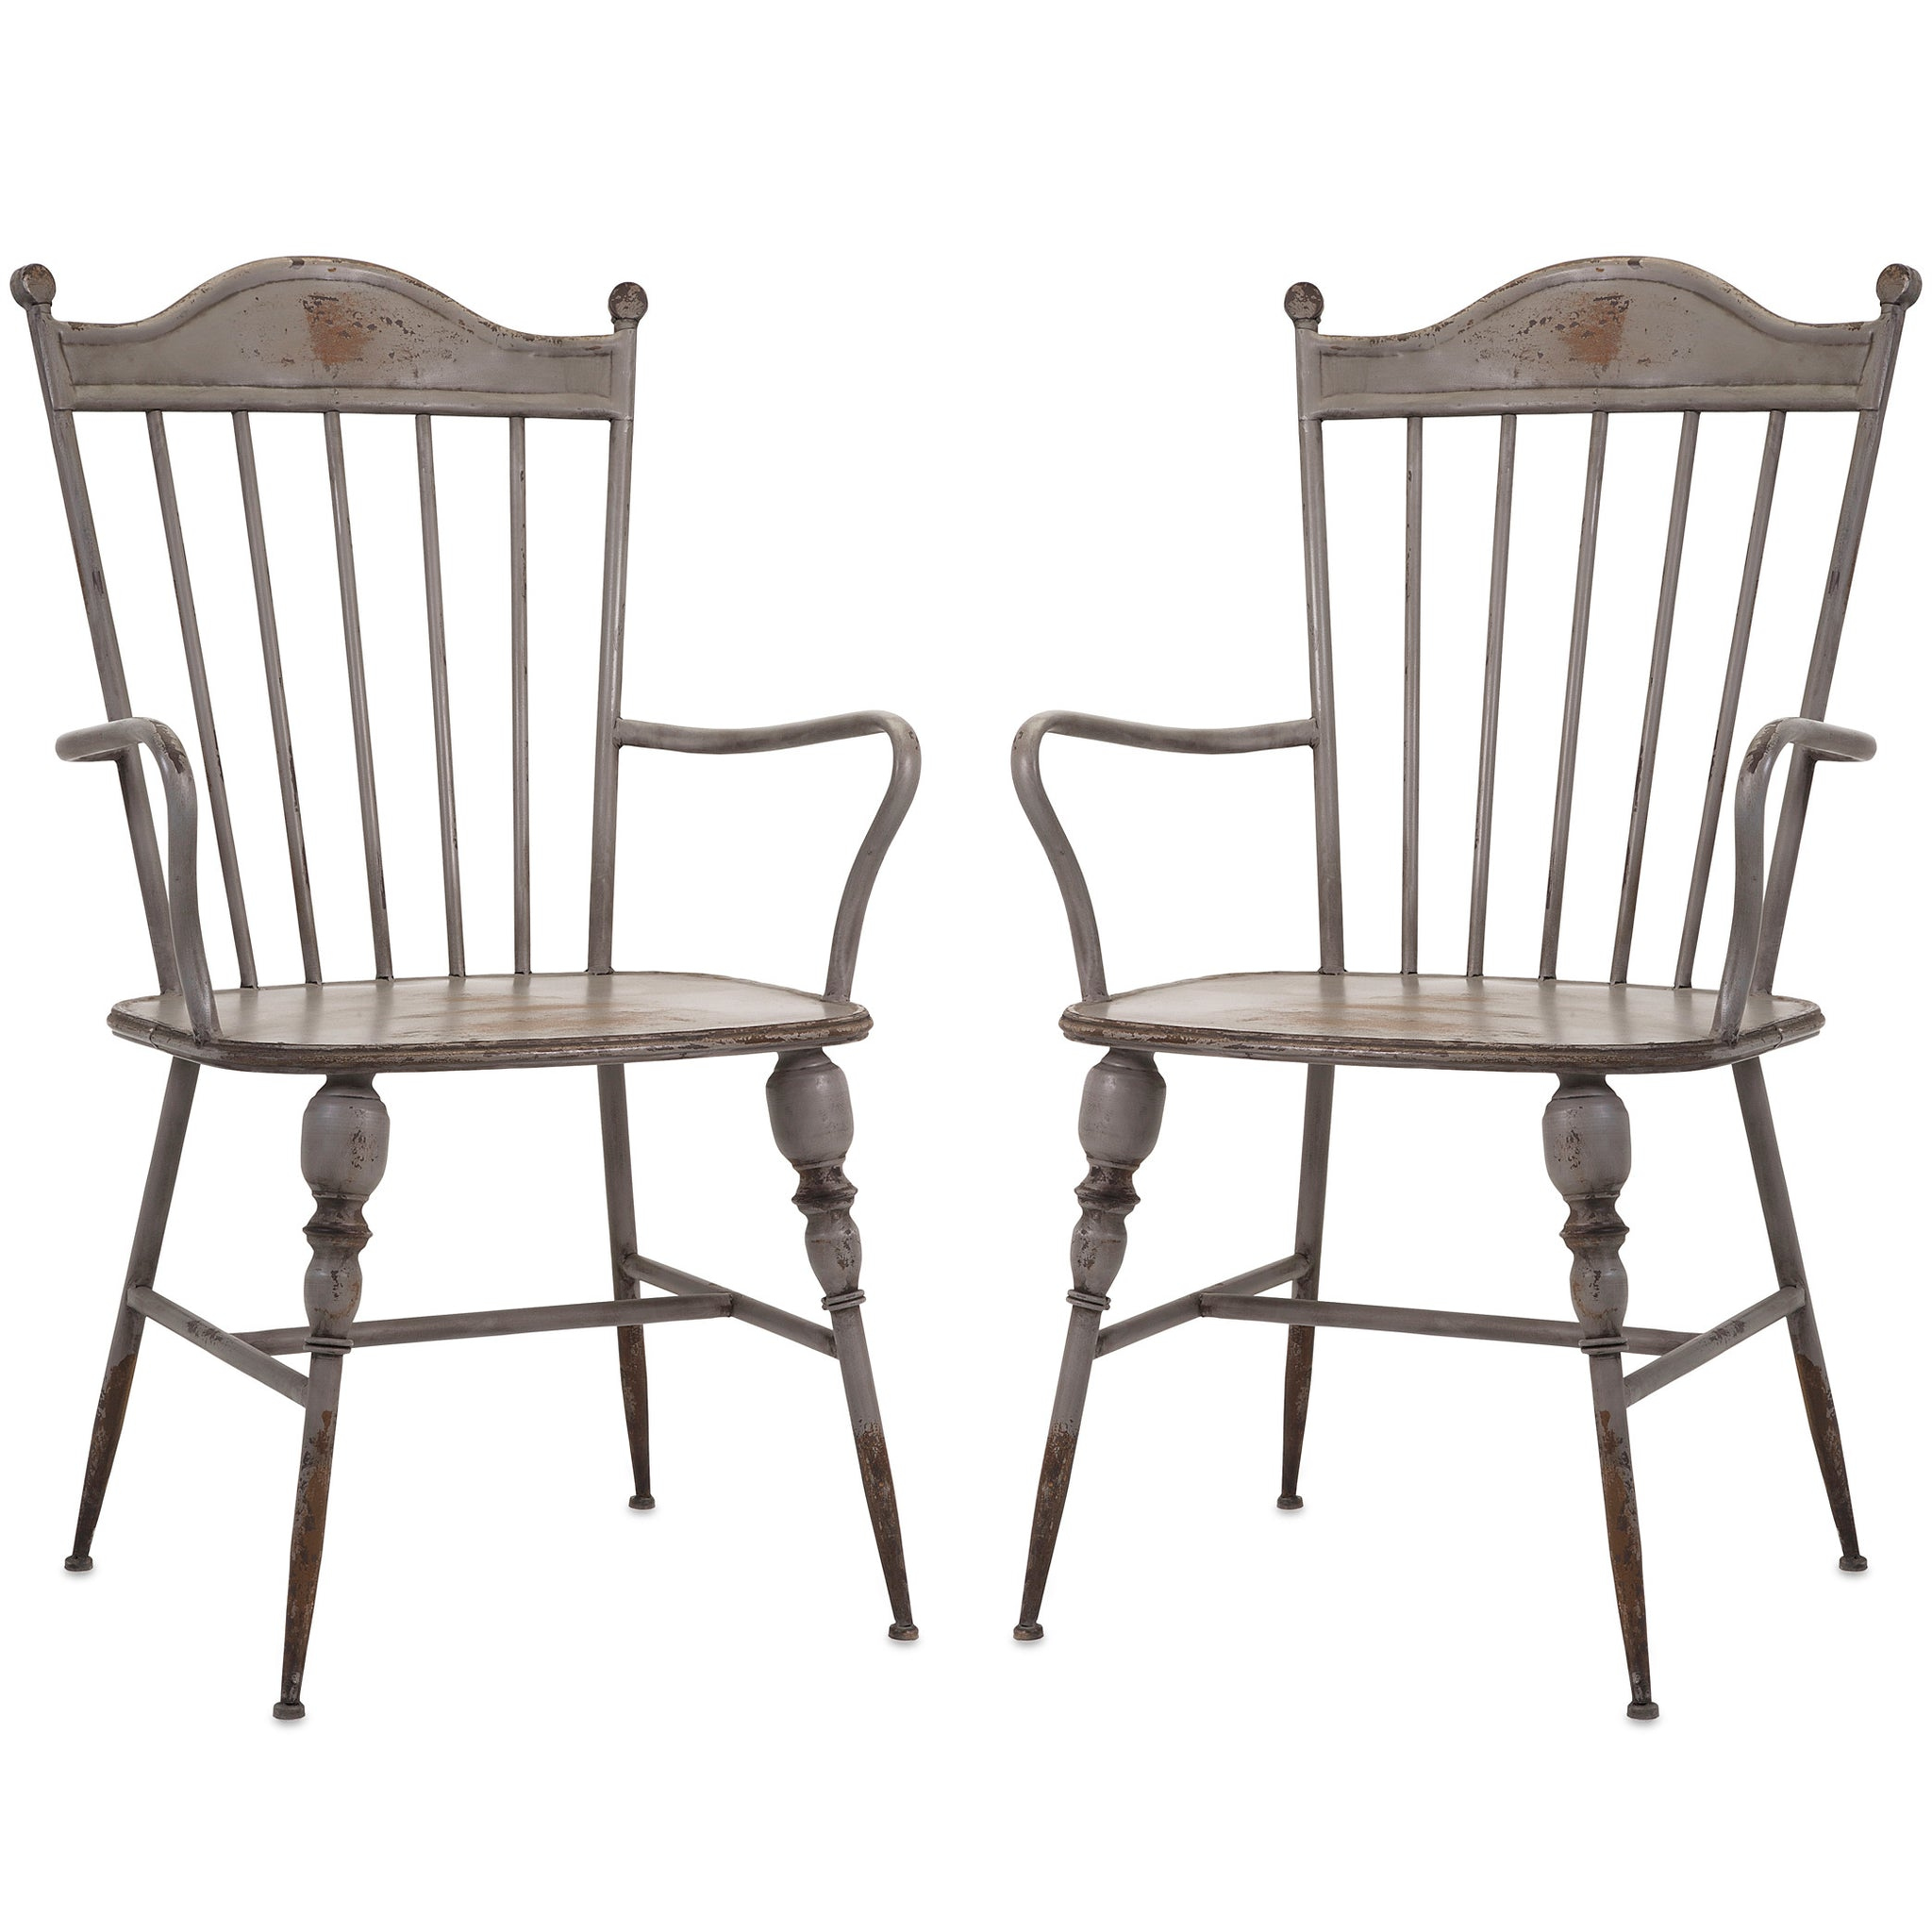 Rustic gray metal farmhouse industrial modern arm chairs for Modern metal chairs